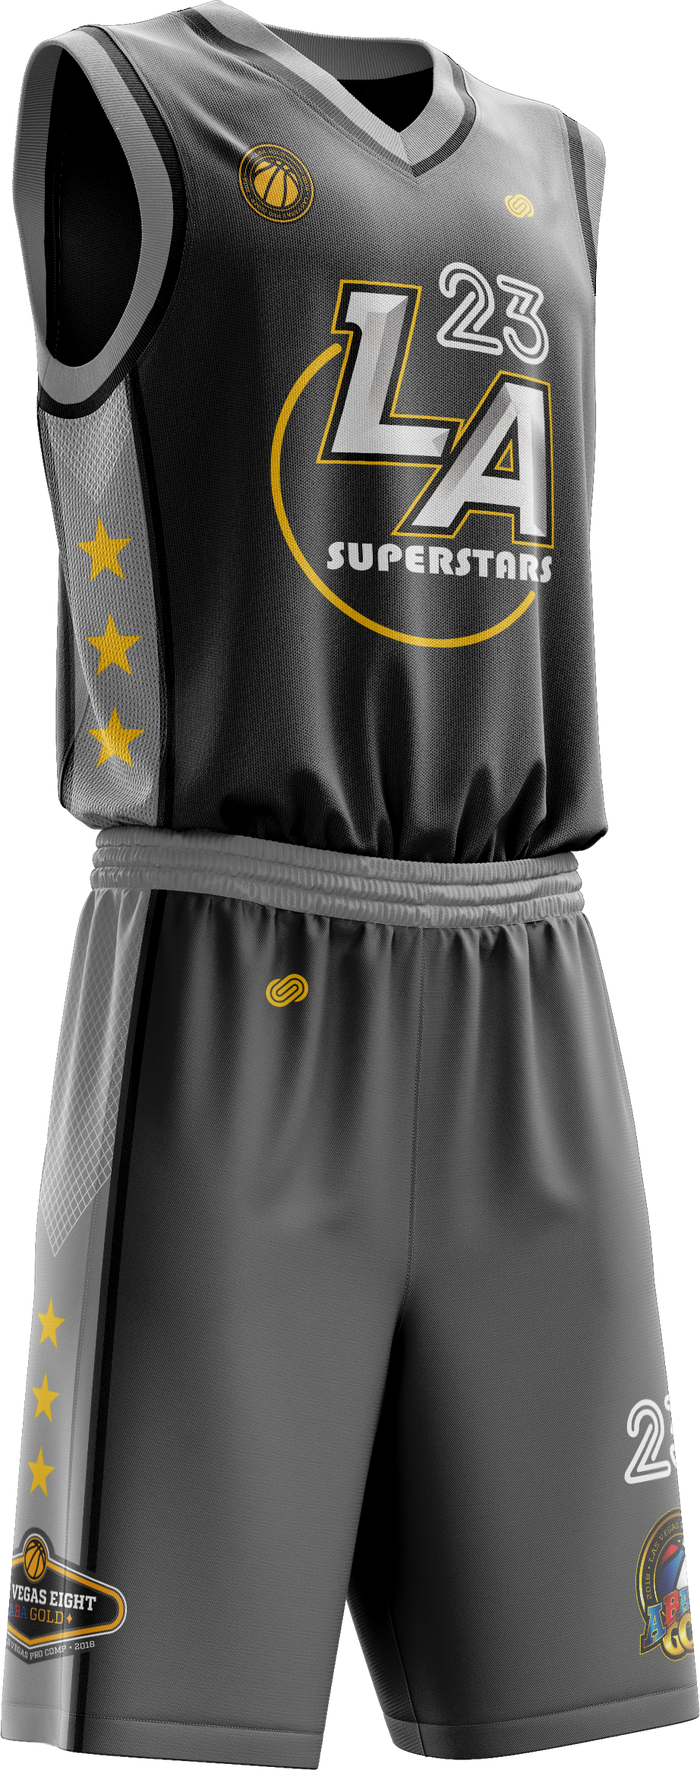 LA Superstars Road Uniform